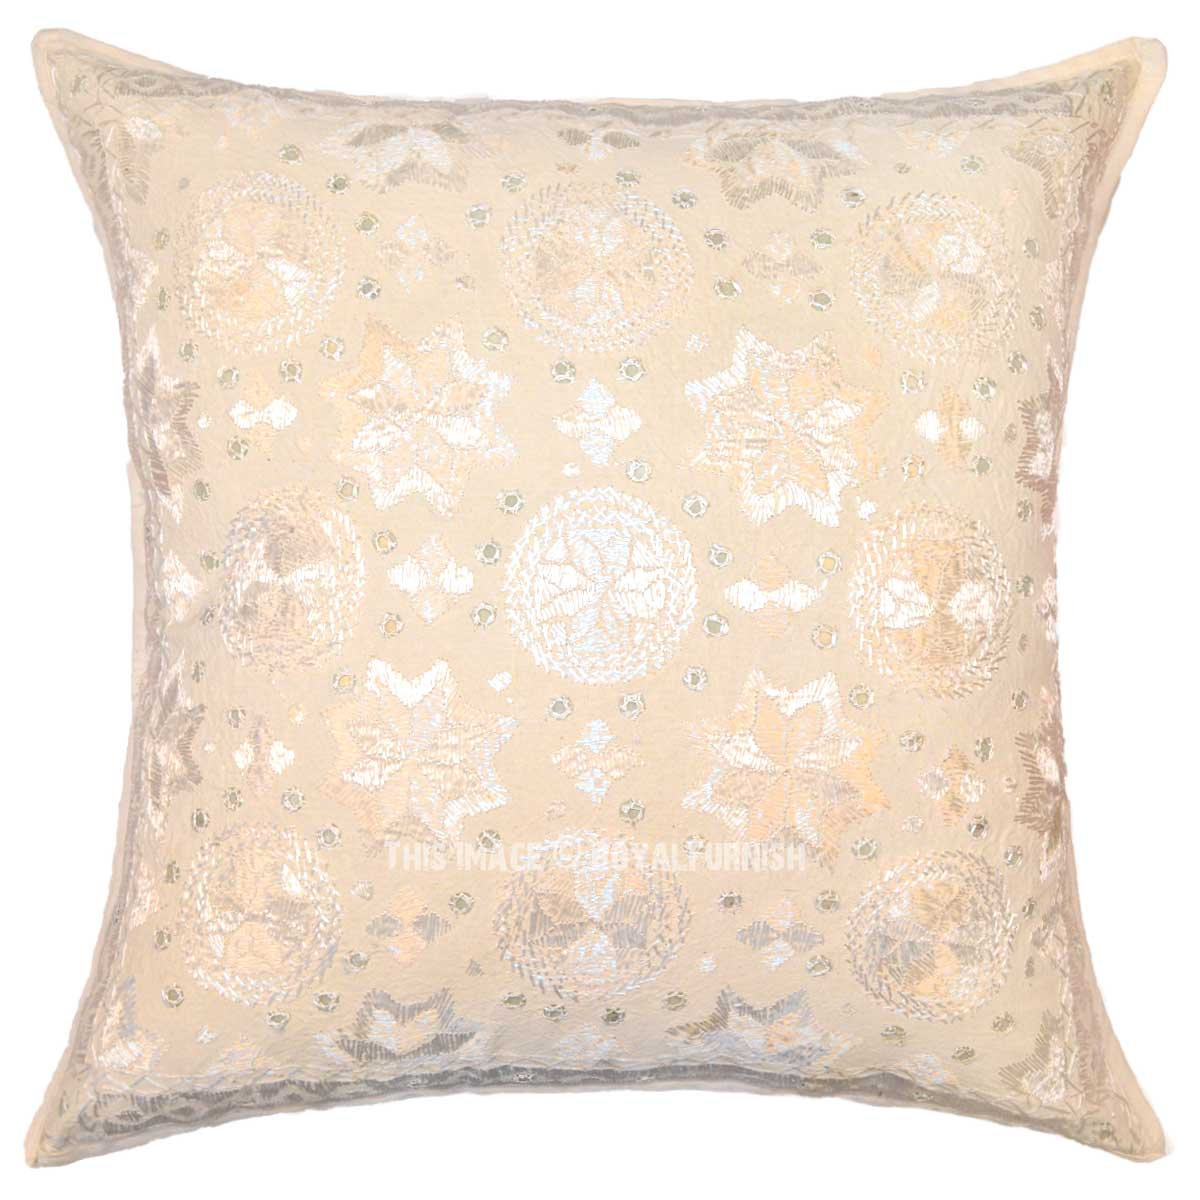 Embroidered Decorative Pillow : 24